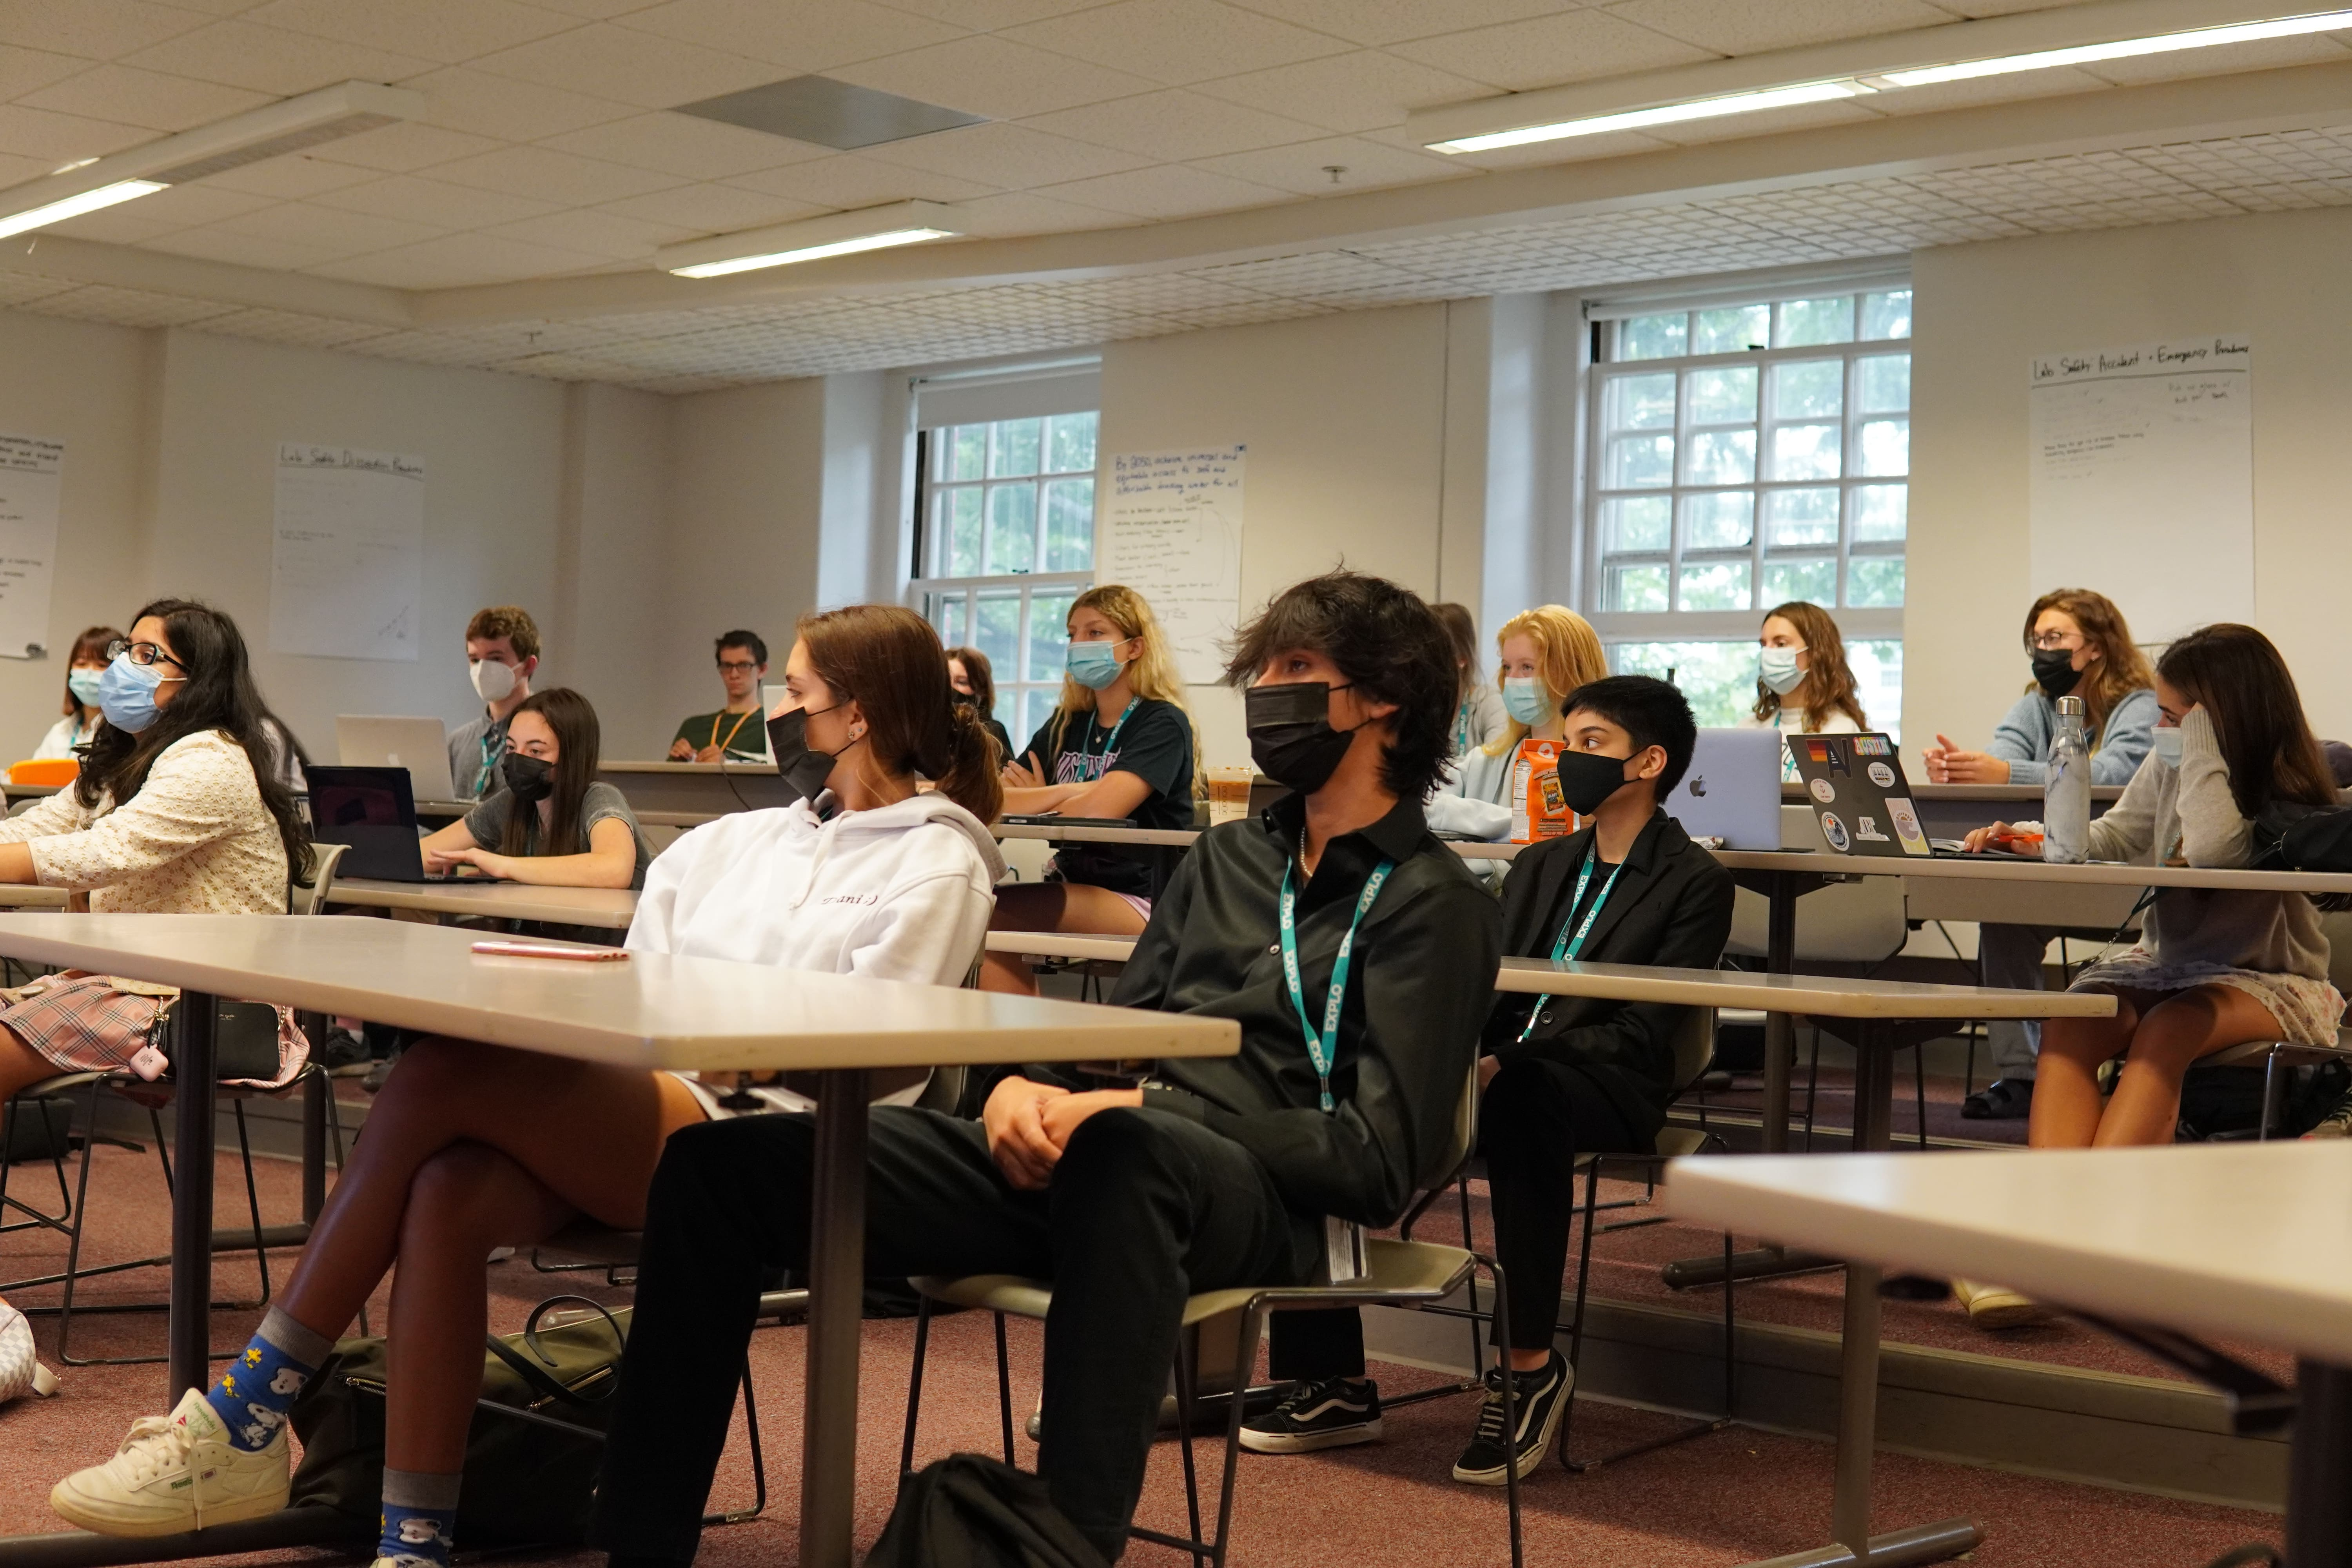 Rows of students listen in a classroom to a discussion on medical ethics.